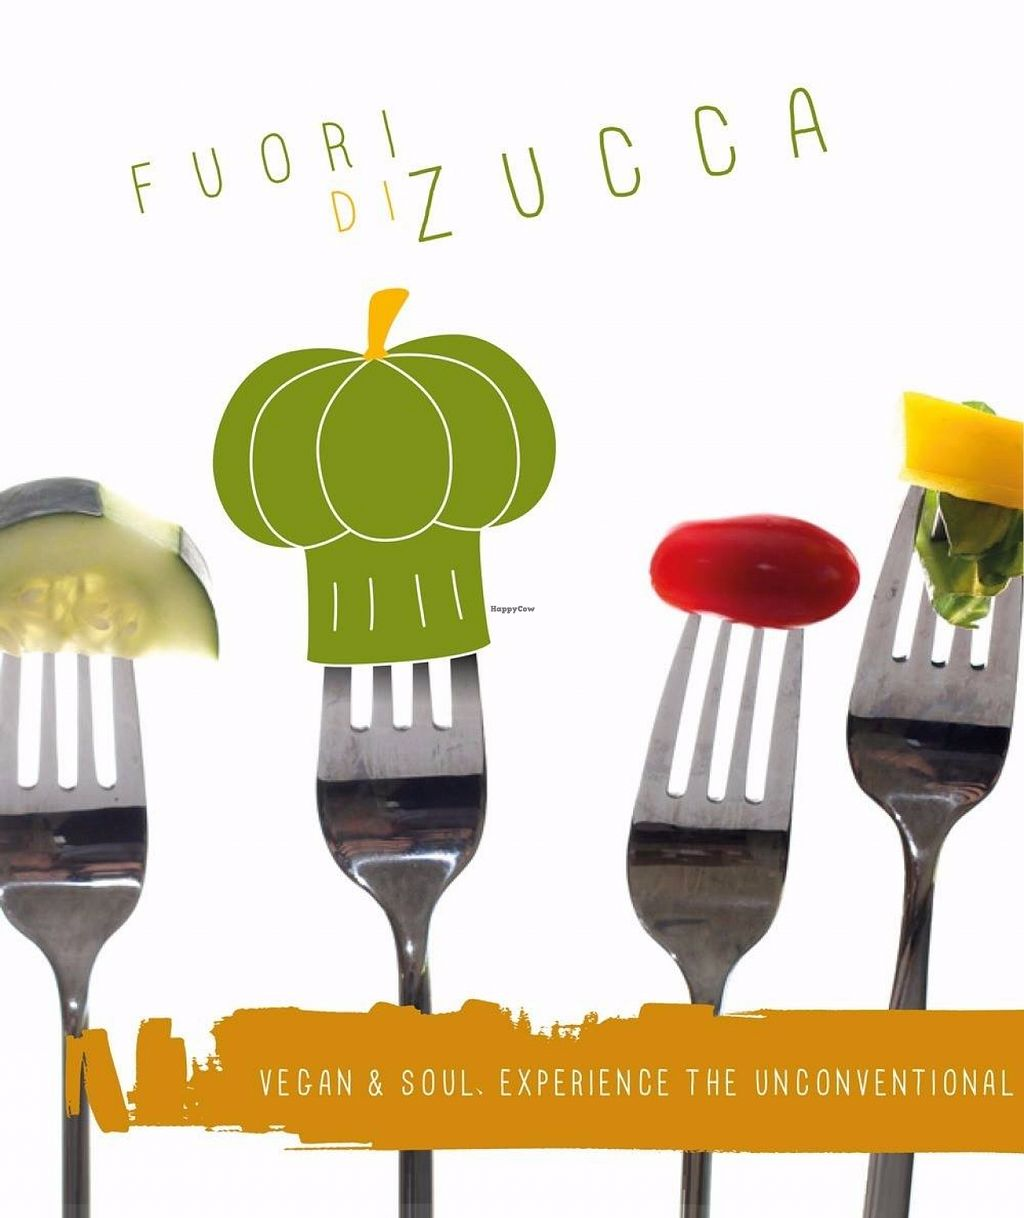 "Photo of Fuori di Zucca  by <a href=""/members/profile/solrac069"">solrac069</a> <br/>Great atmosphere, great meals and friendly workers <br/> April 3, 2016  - <a href='/contact/abuse/image/71702/142517'>Report</a>"